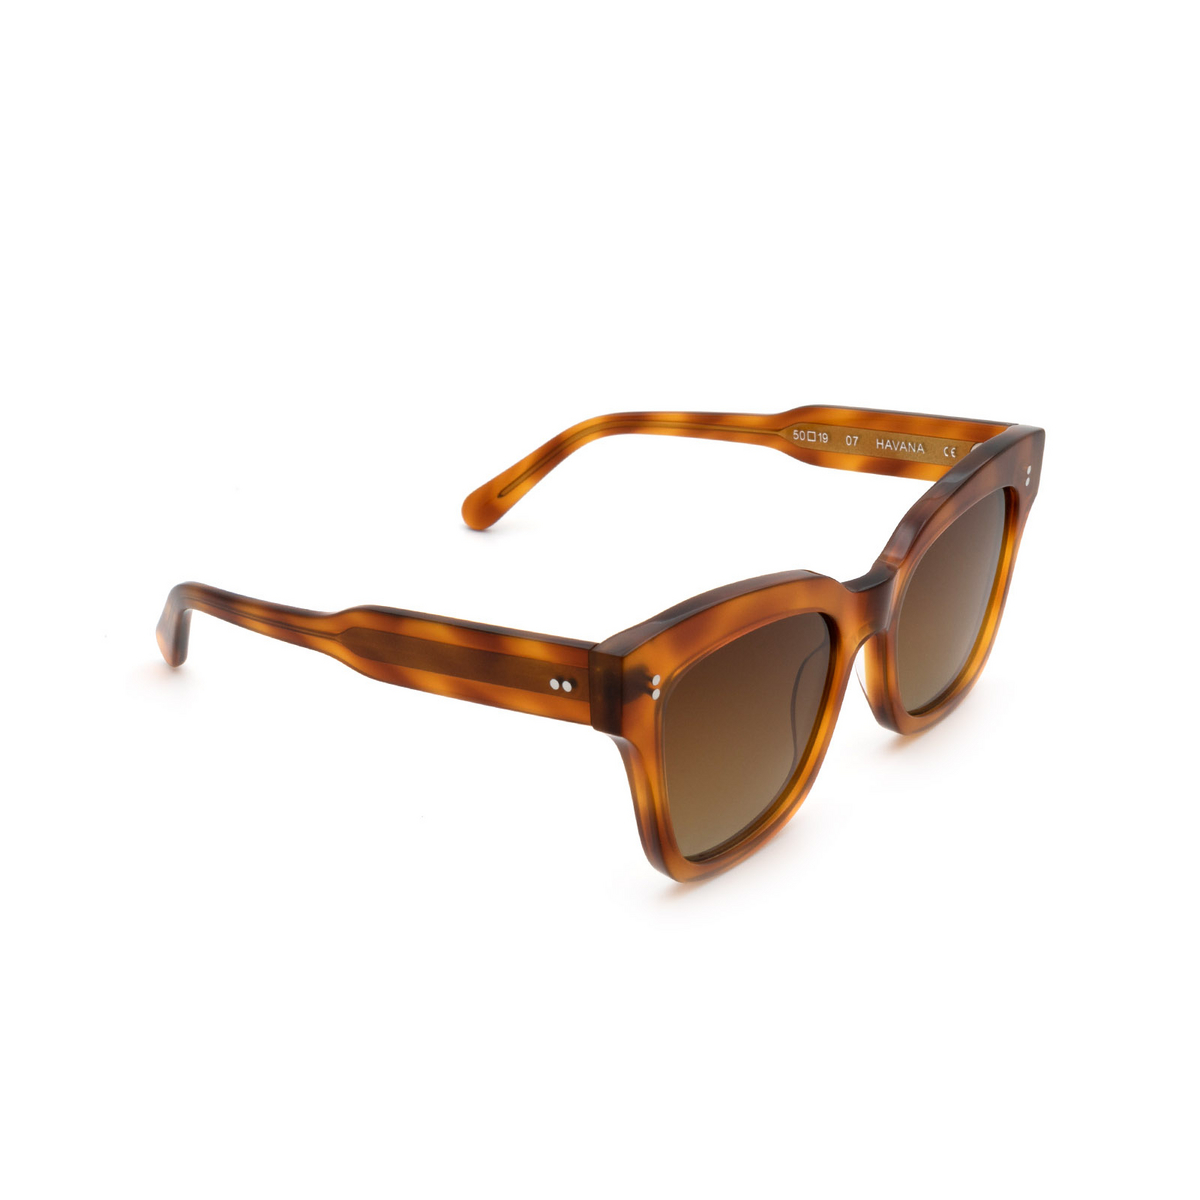 Chimi® Butterfly Sunglasses: 07 color Havana - three-quarters view.